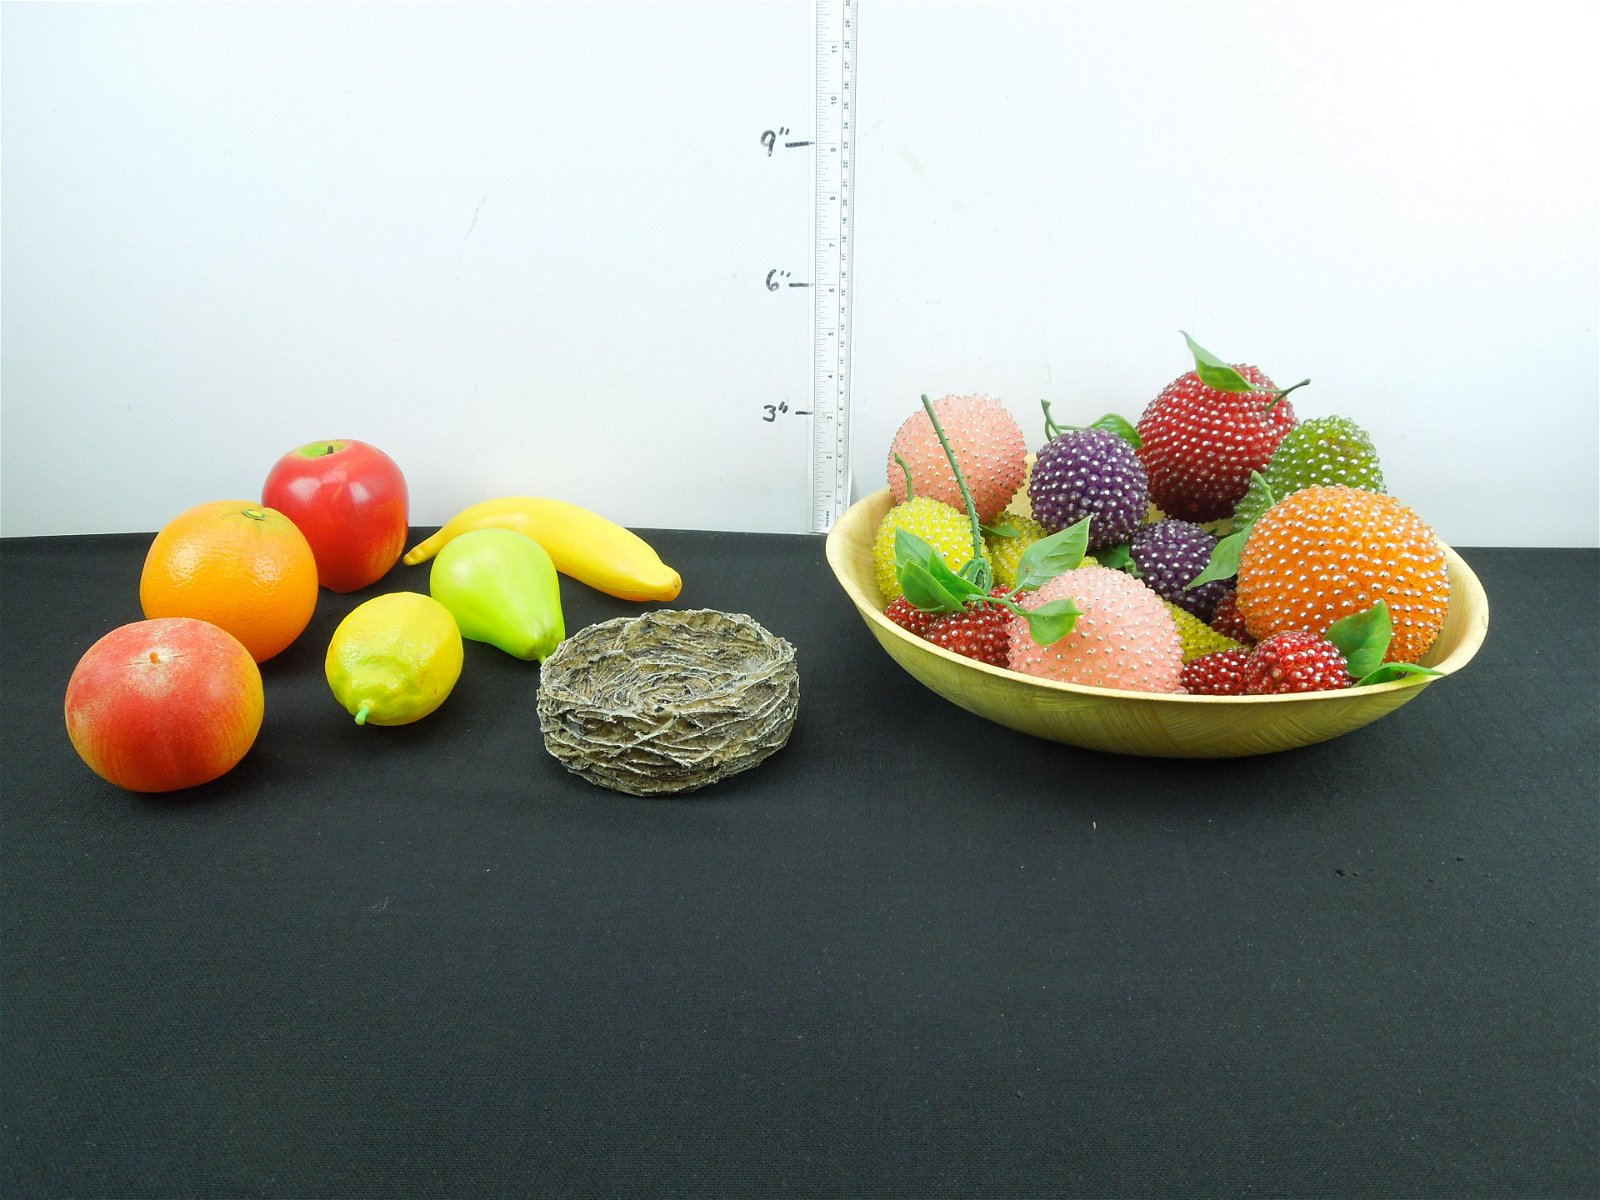 Lot of Assorted Household Décor - Decorative Fruit,